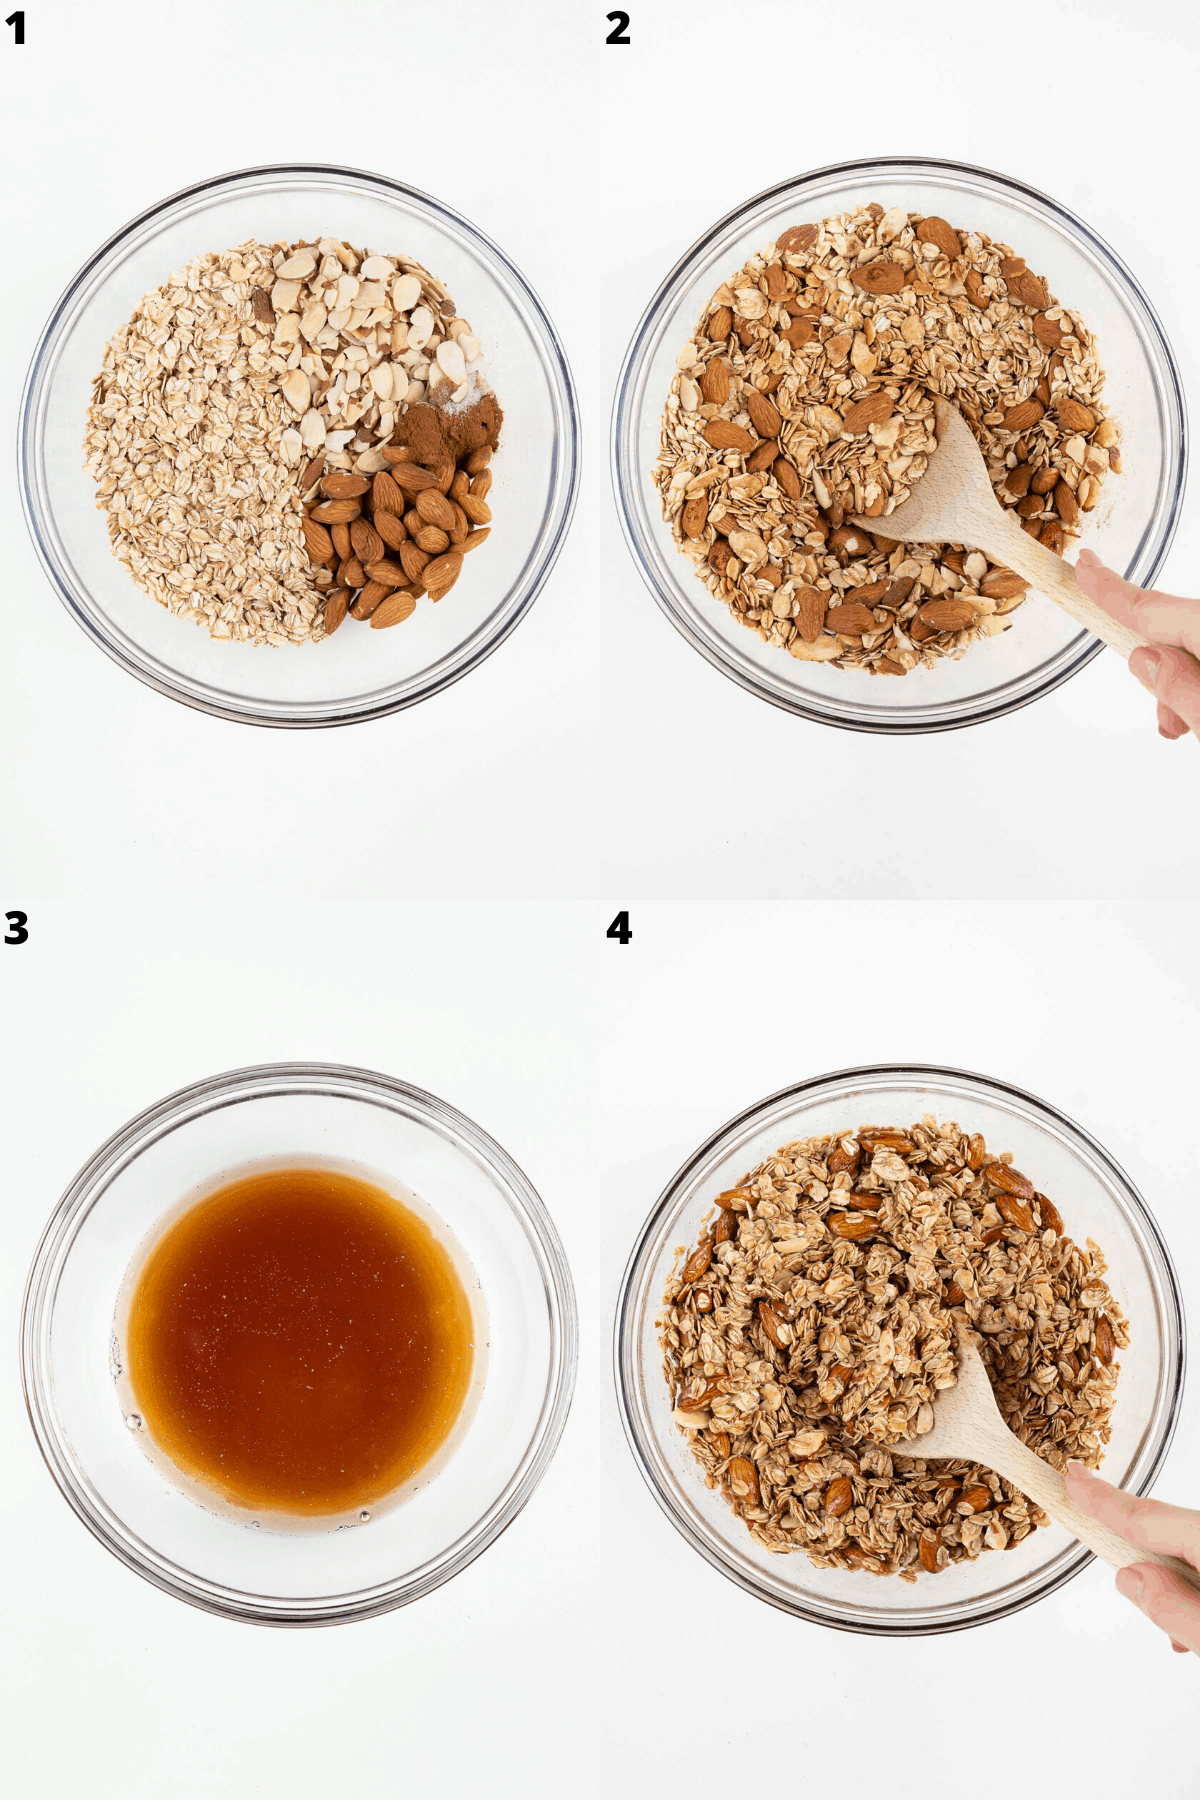 a collage of four images showing the step-by-step process of mixing ingredients in a glass bowl